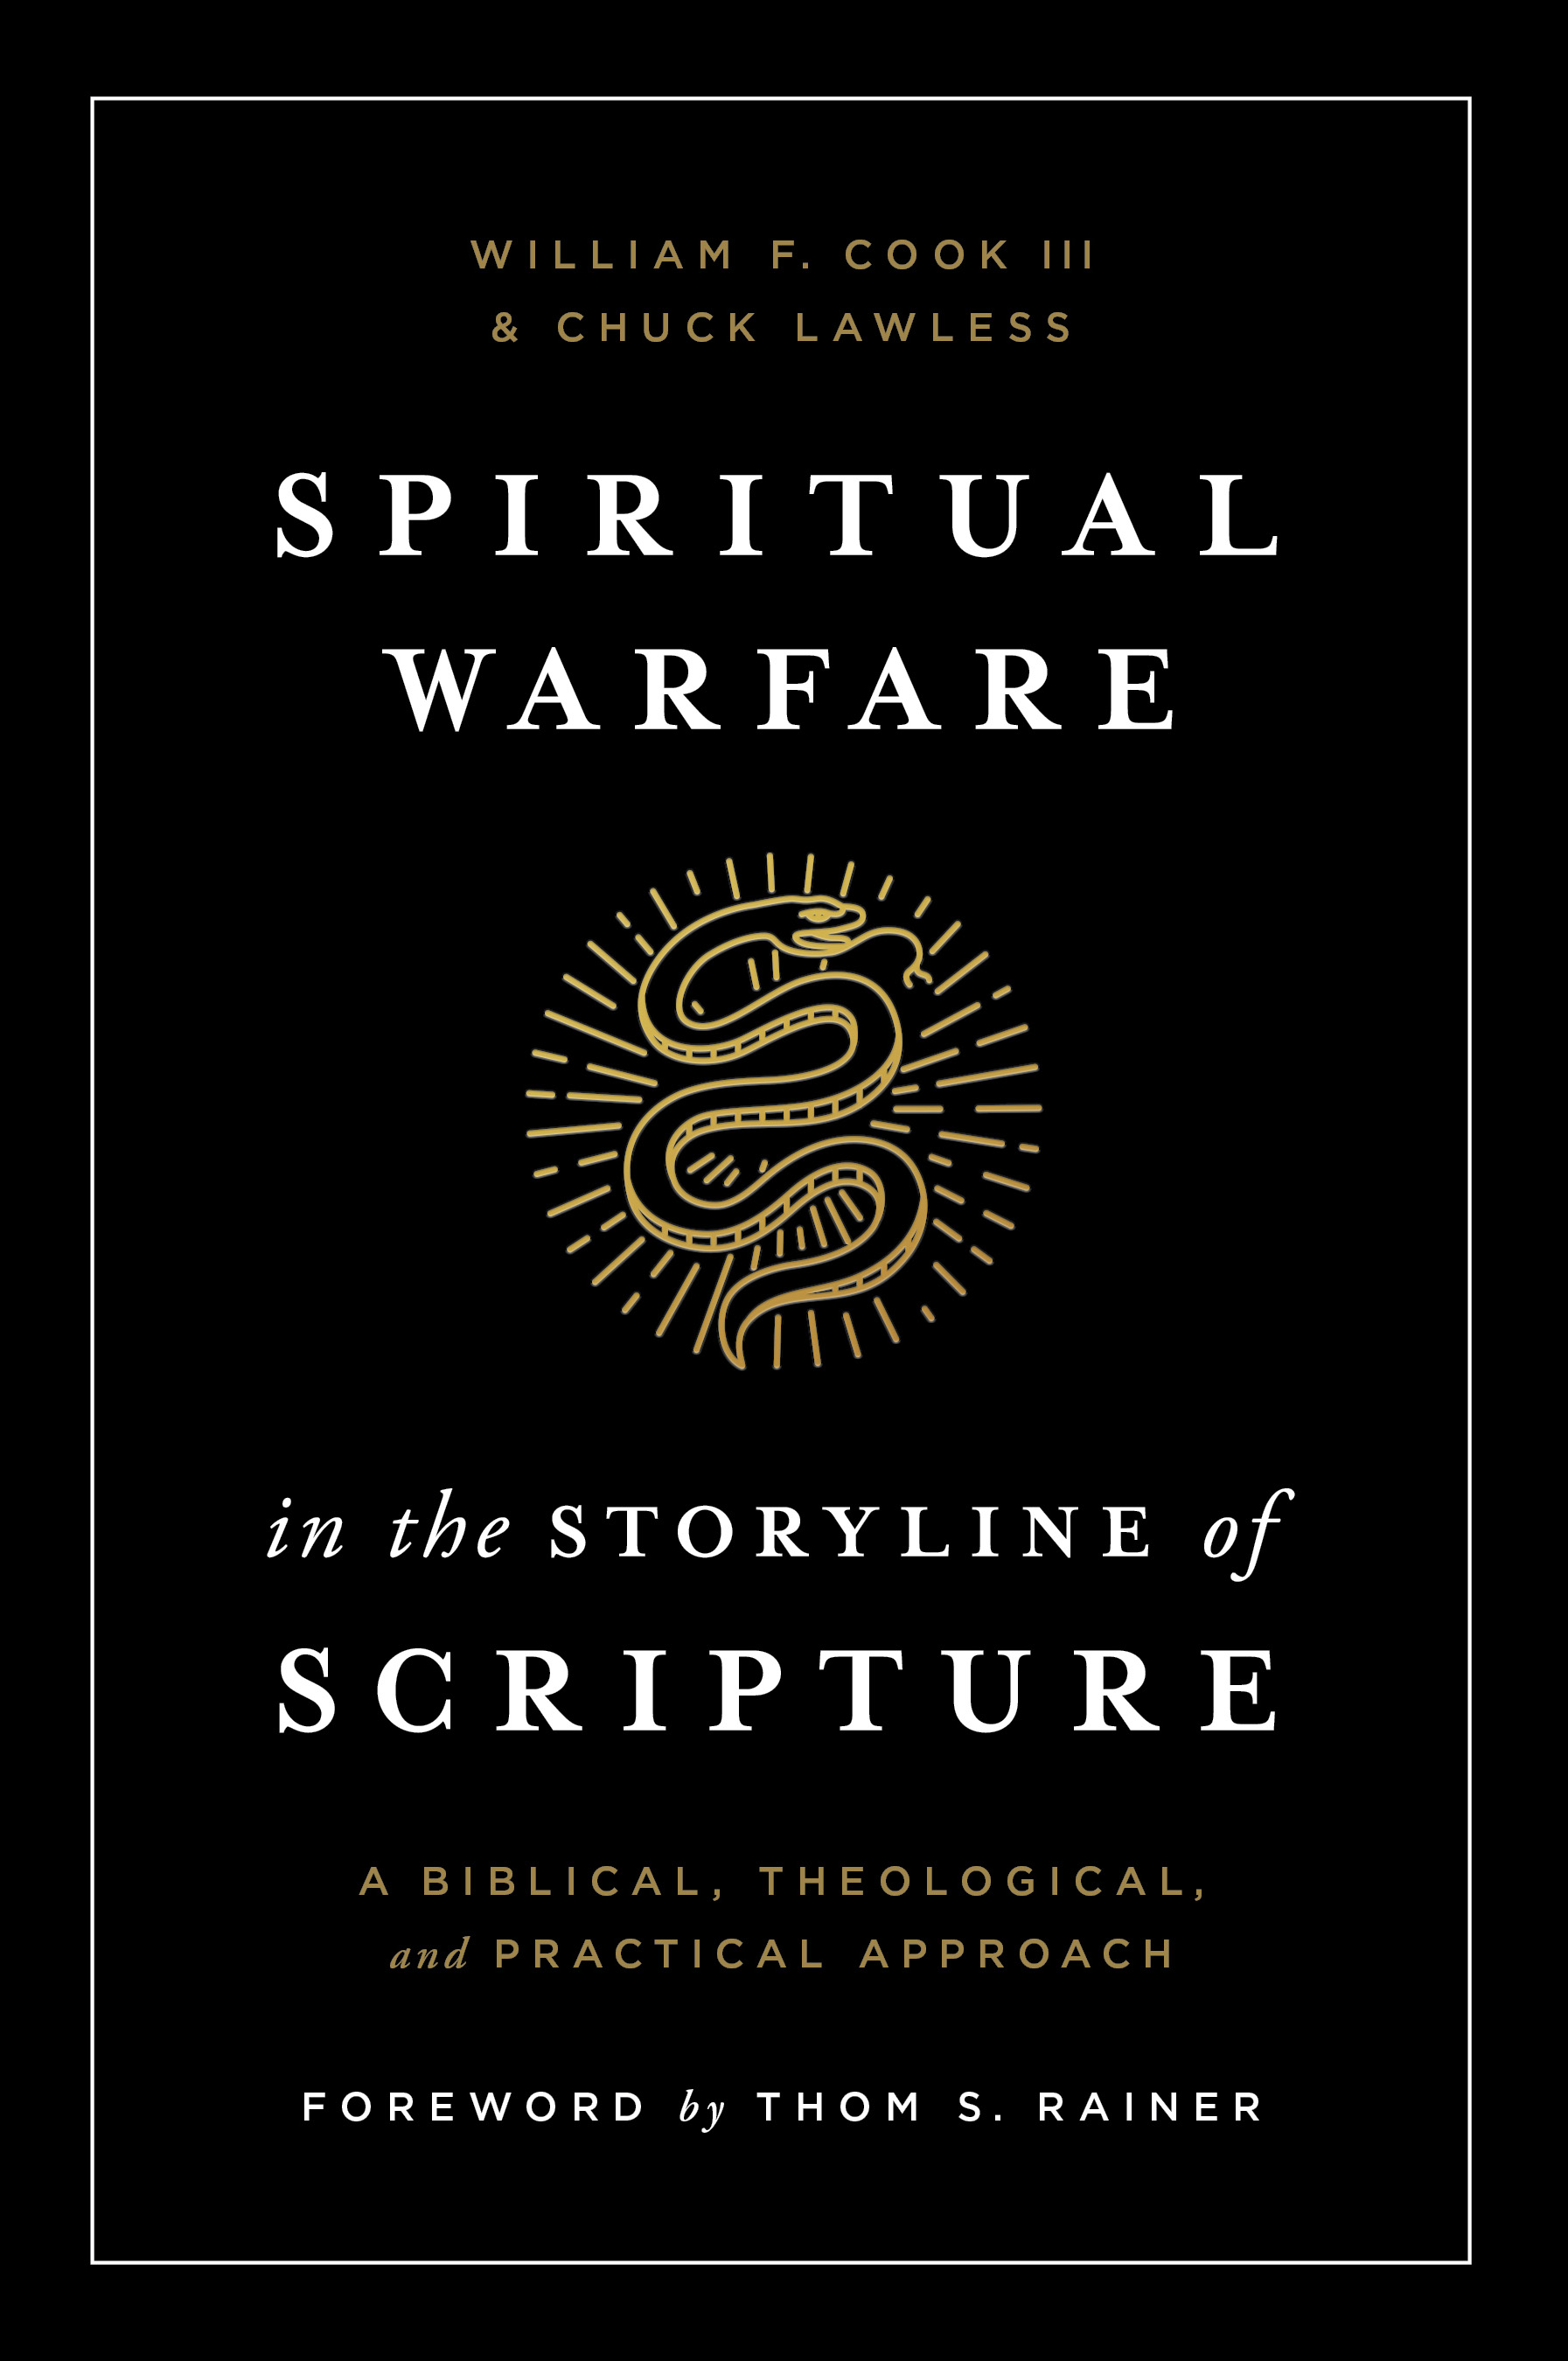 Spiritual Warfare in the Storyline of Scripture: A Biblical, Theological, and Practical Approach